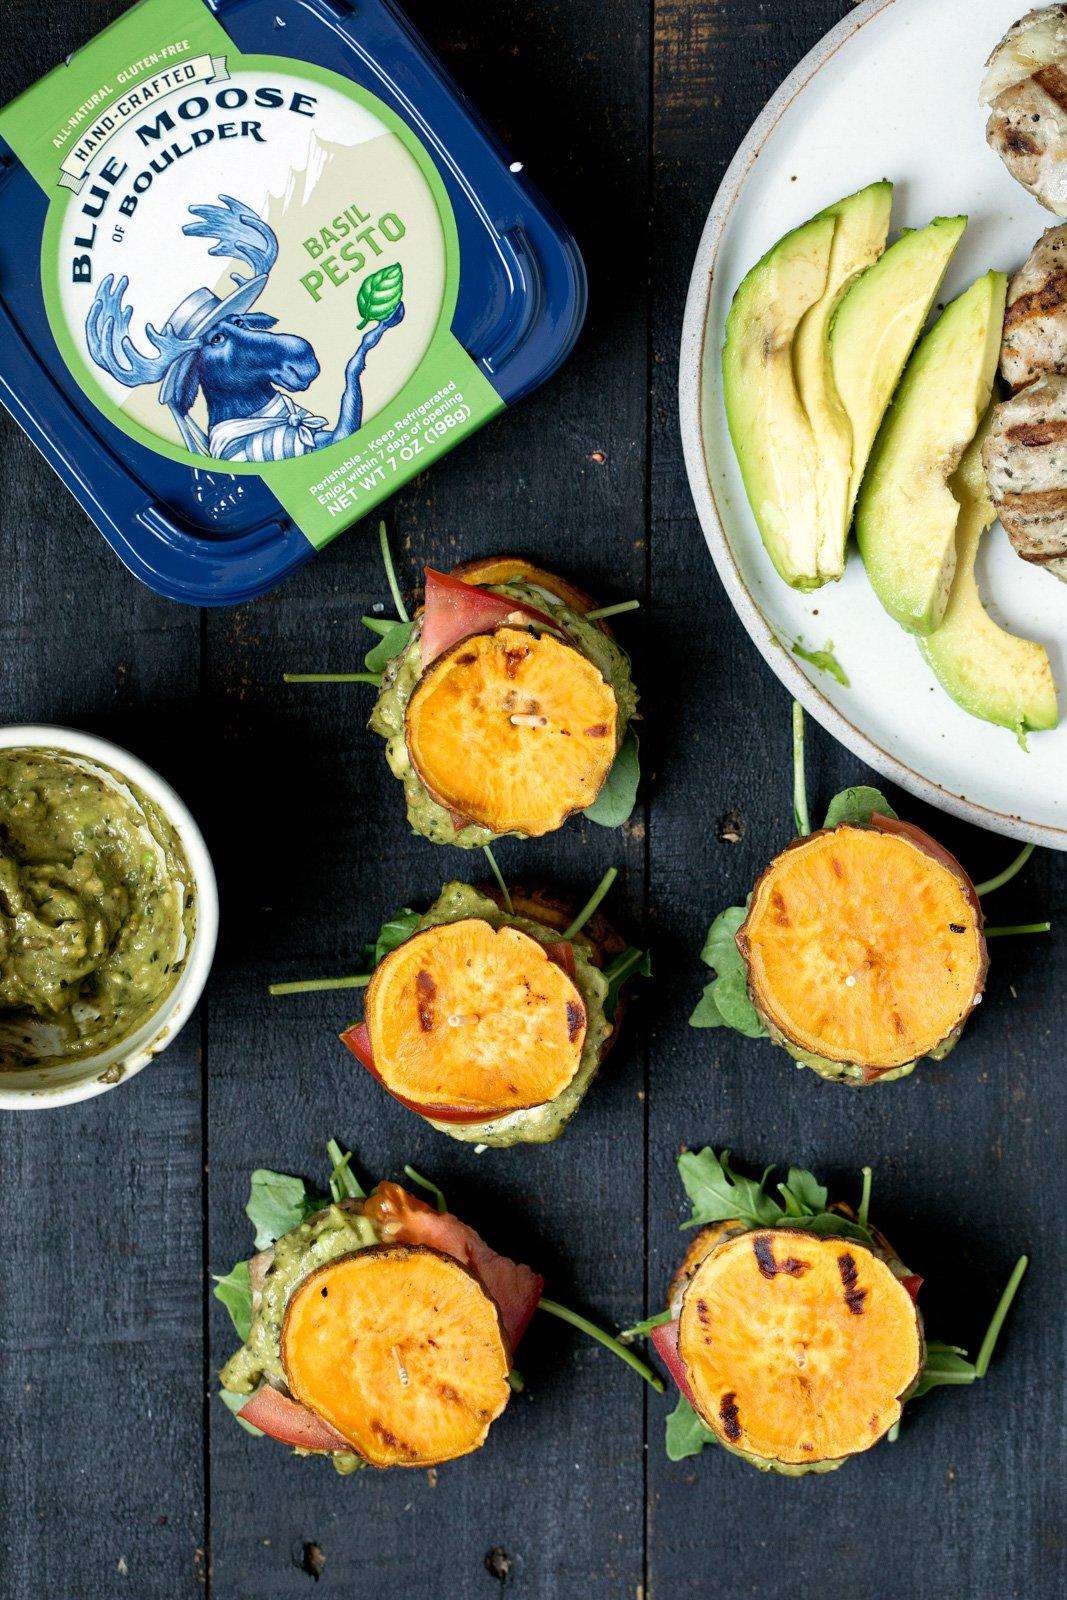 turkey burger sliders on sweet potato buns next to blue moose pesto